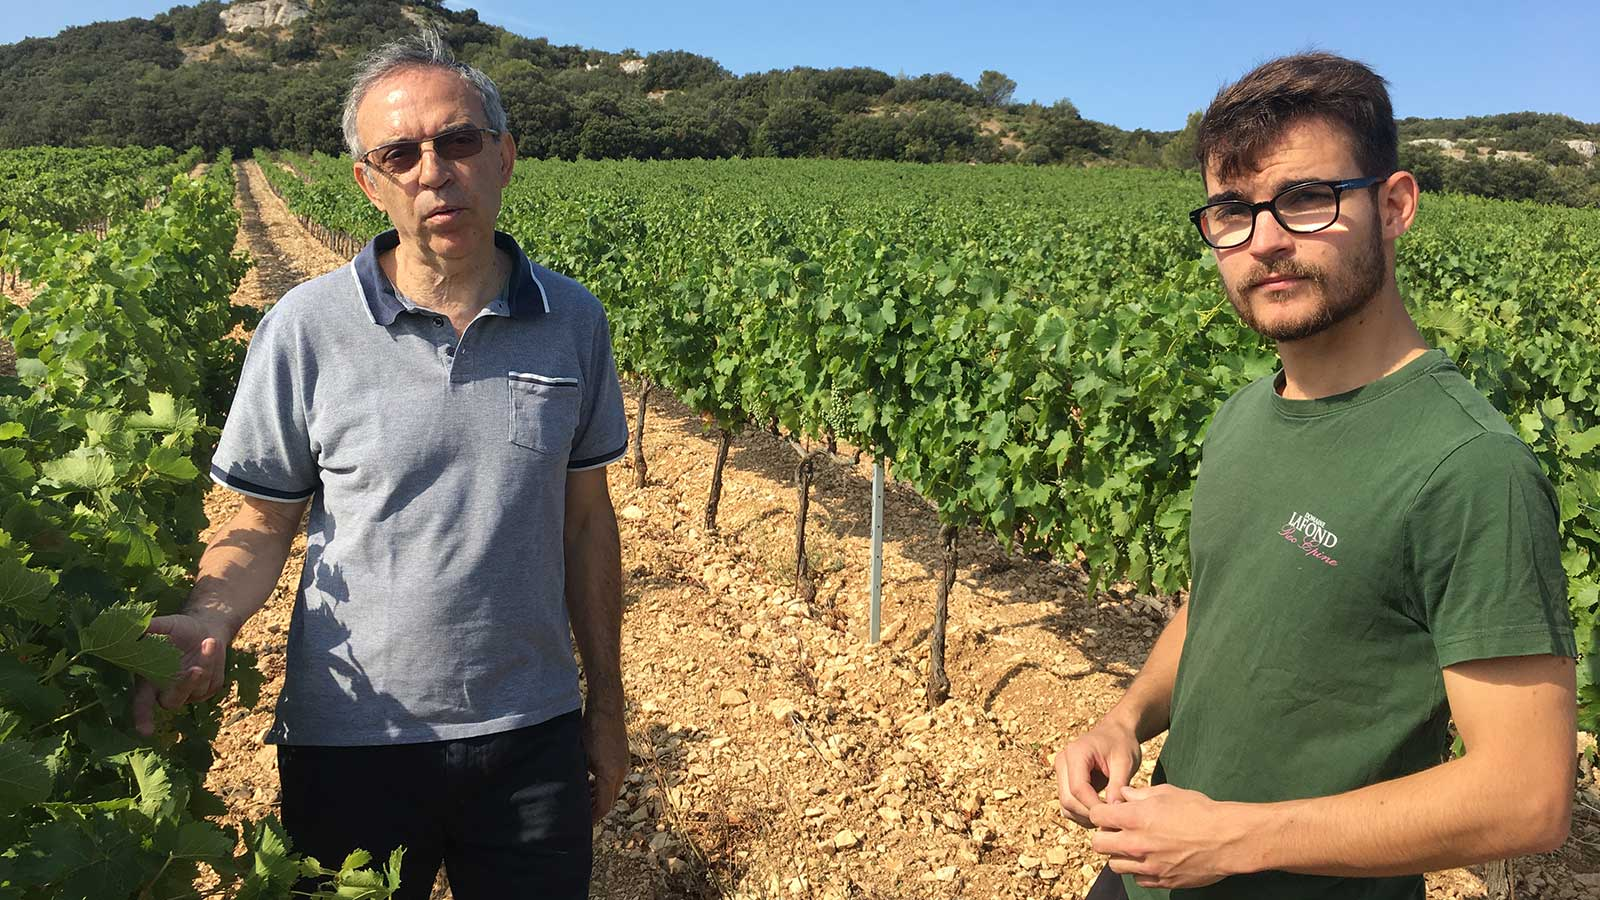 Pascal Lafond and his son François stand in a sunny vineyard in the Vestides section, with light-colored limestone soil and hills in the background.